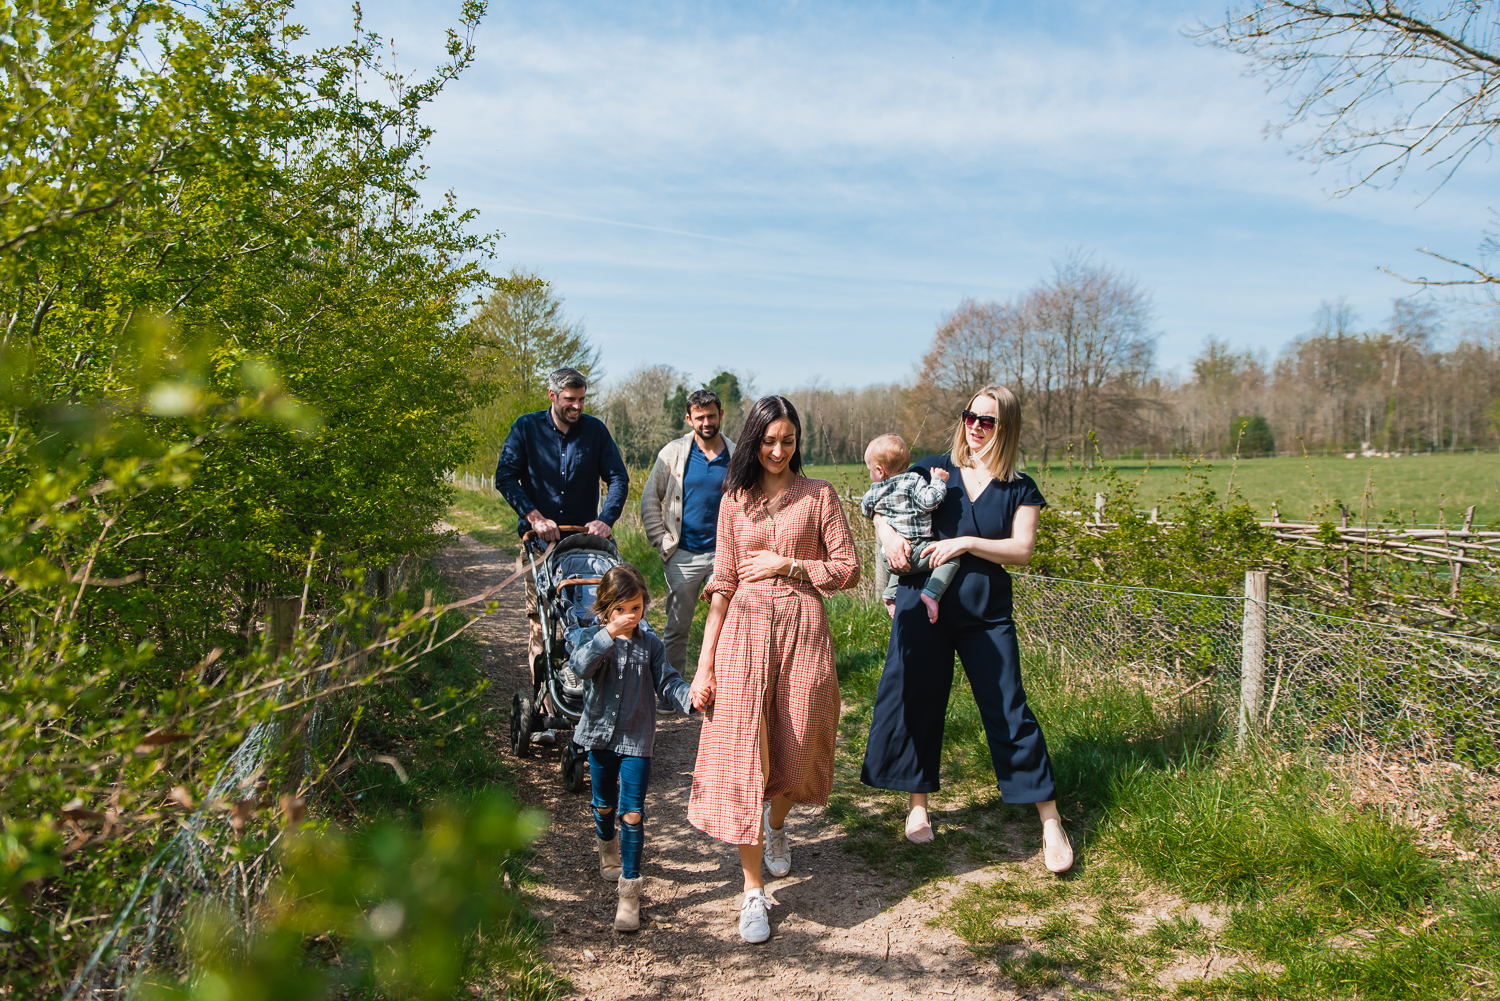 A large family party going on a country walk around Wandlebury Country Park in Cambridge